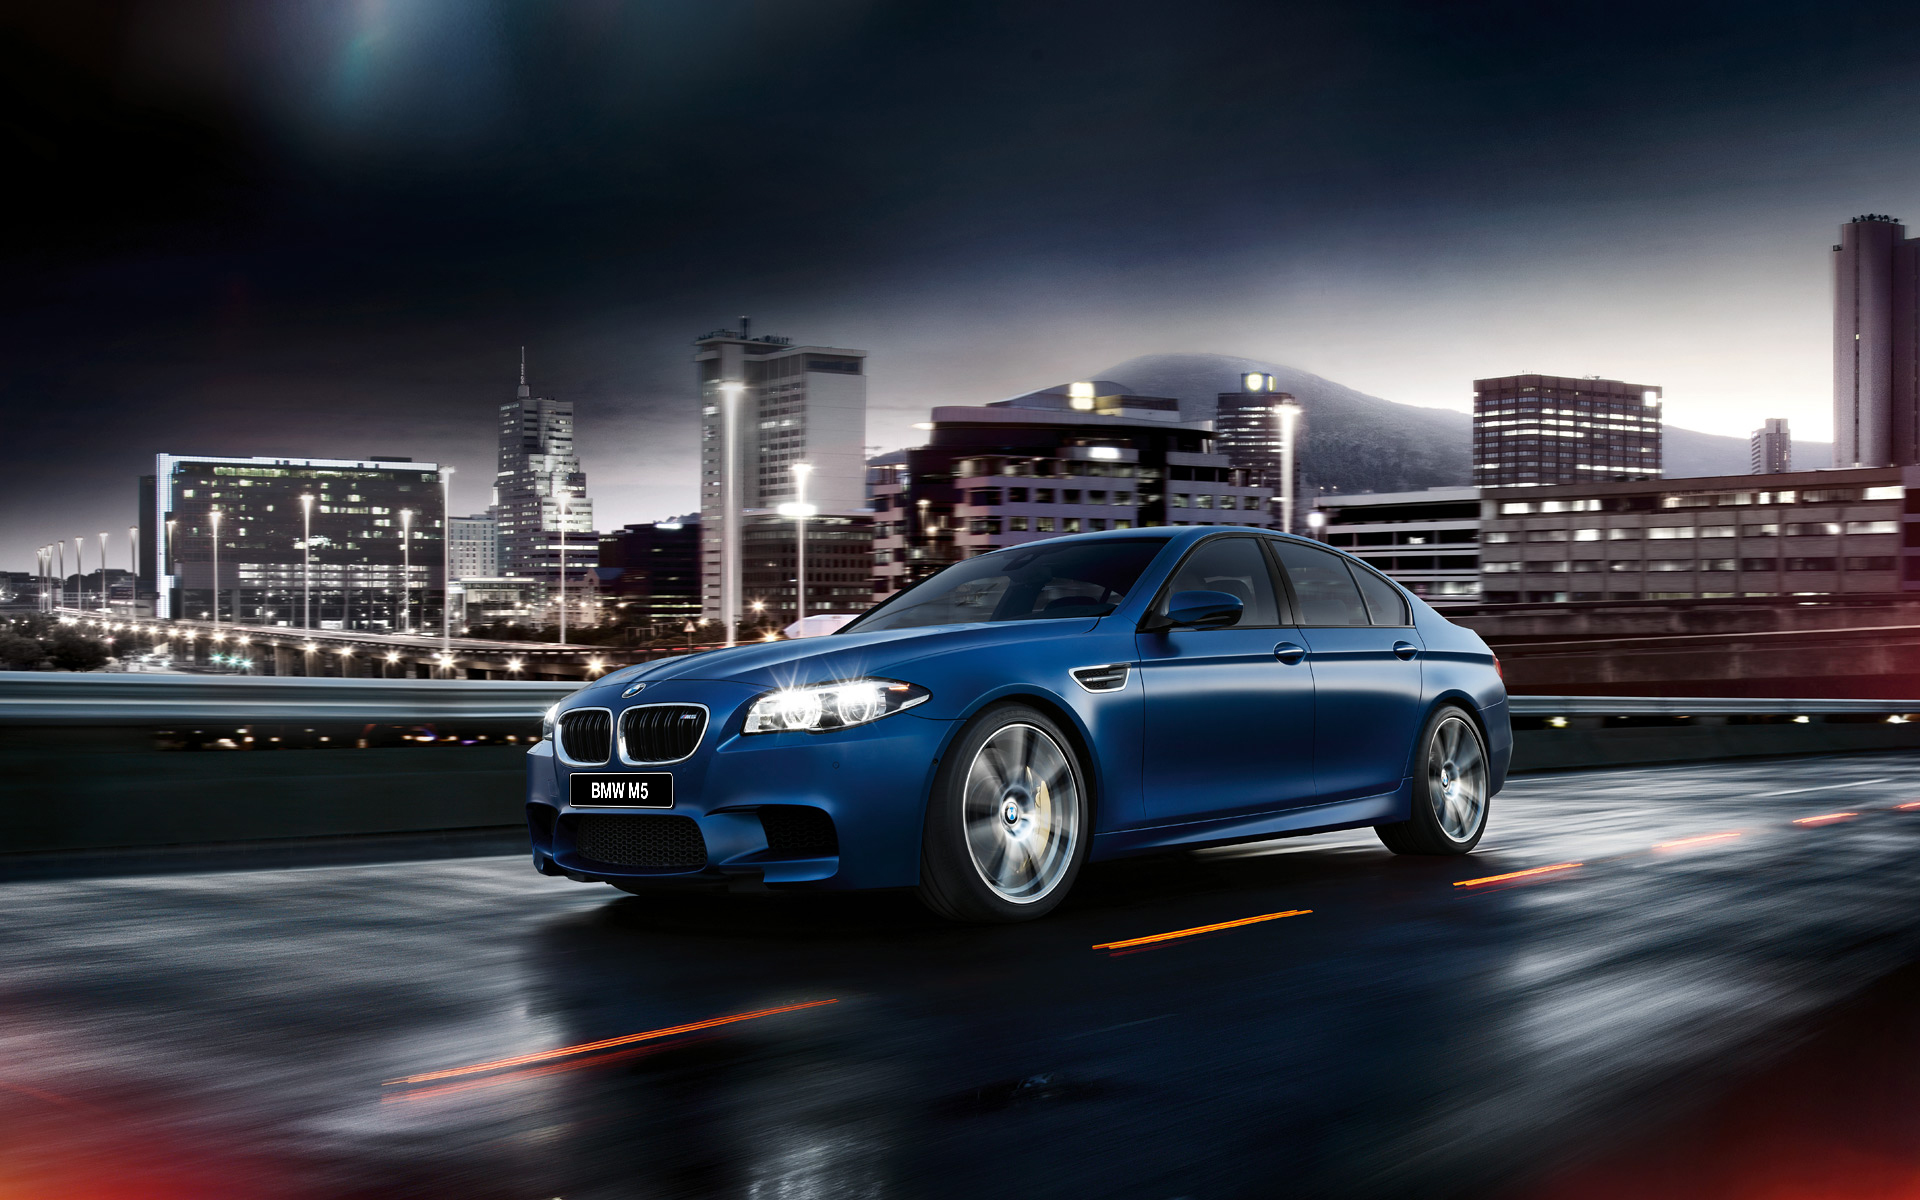 2015 bmw m5 f10 wallpaper hd car wallpapers